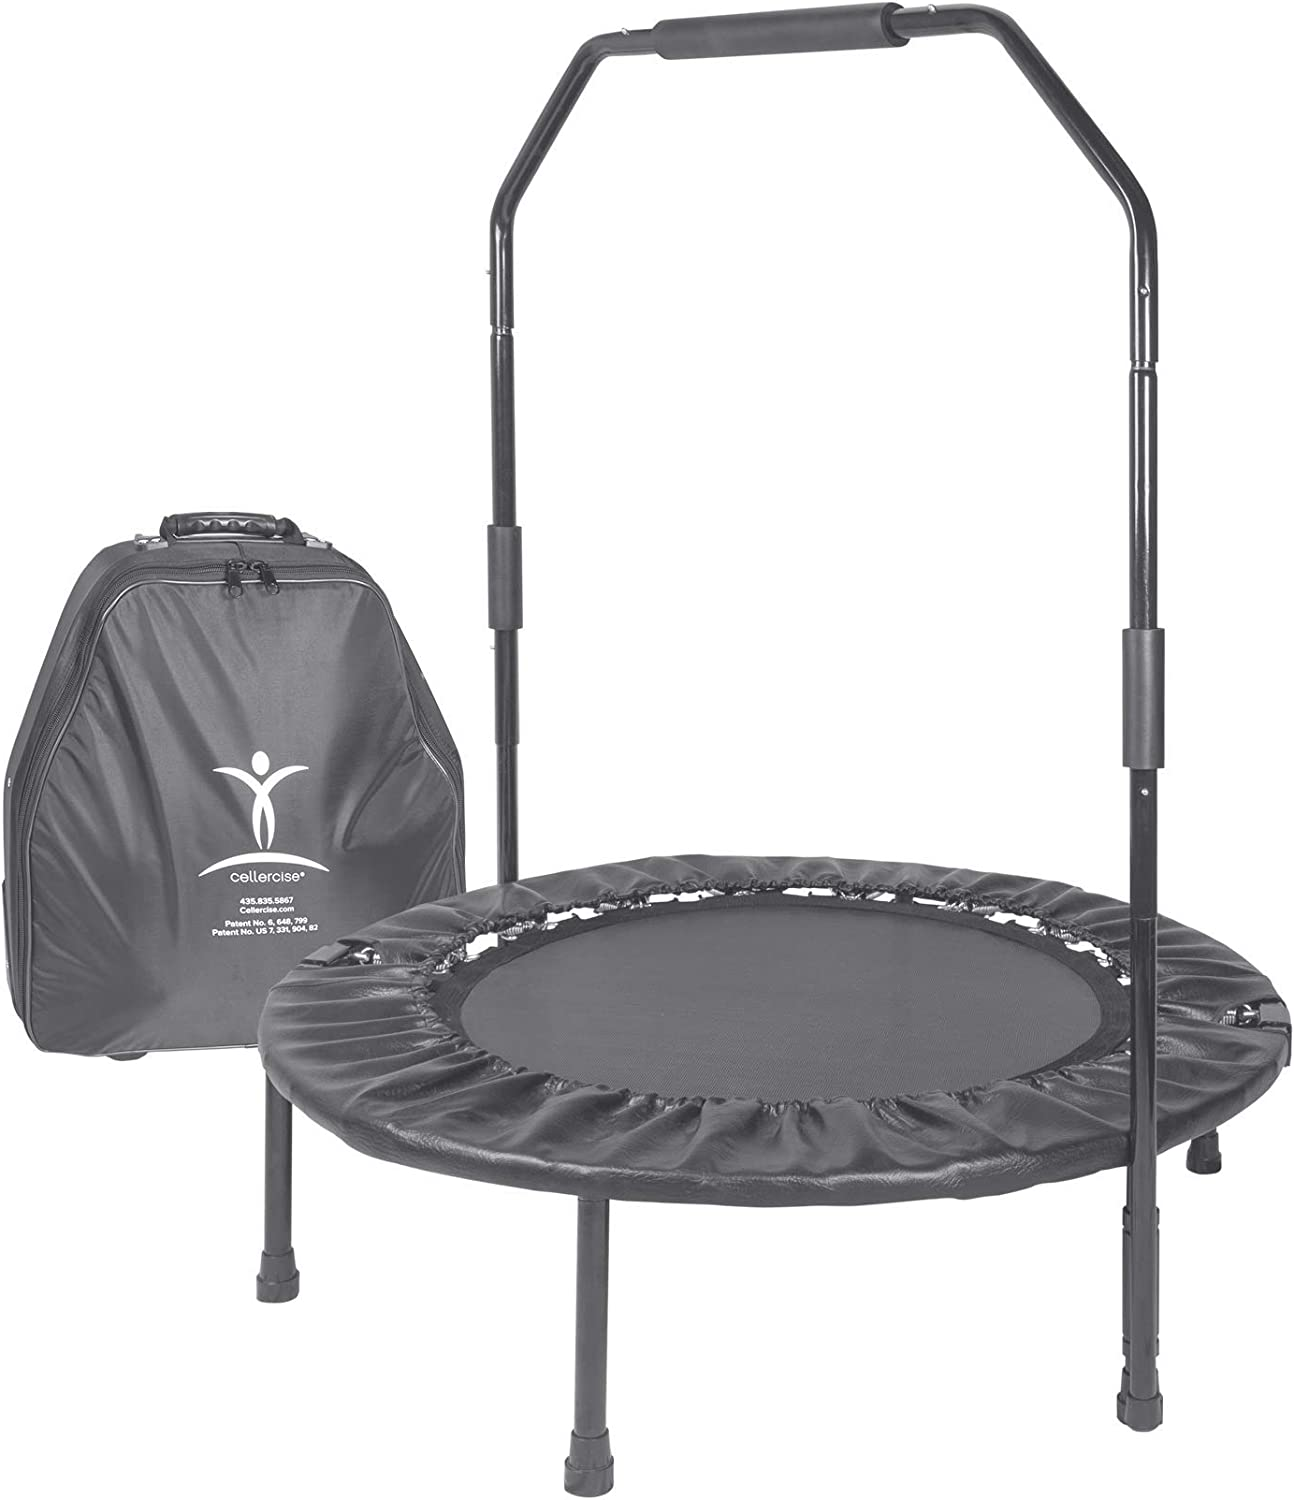 Cellerciser TRI-FOLD Rebounder Kit – Includes Stabilizing Bar and Wheeled Carrying Case